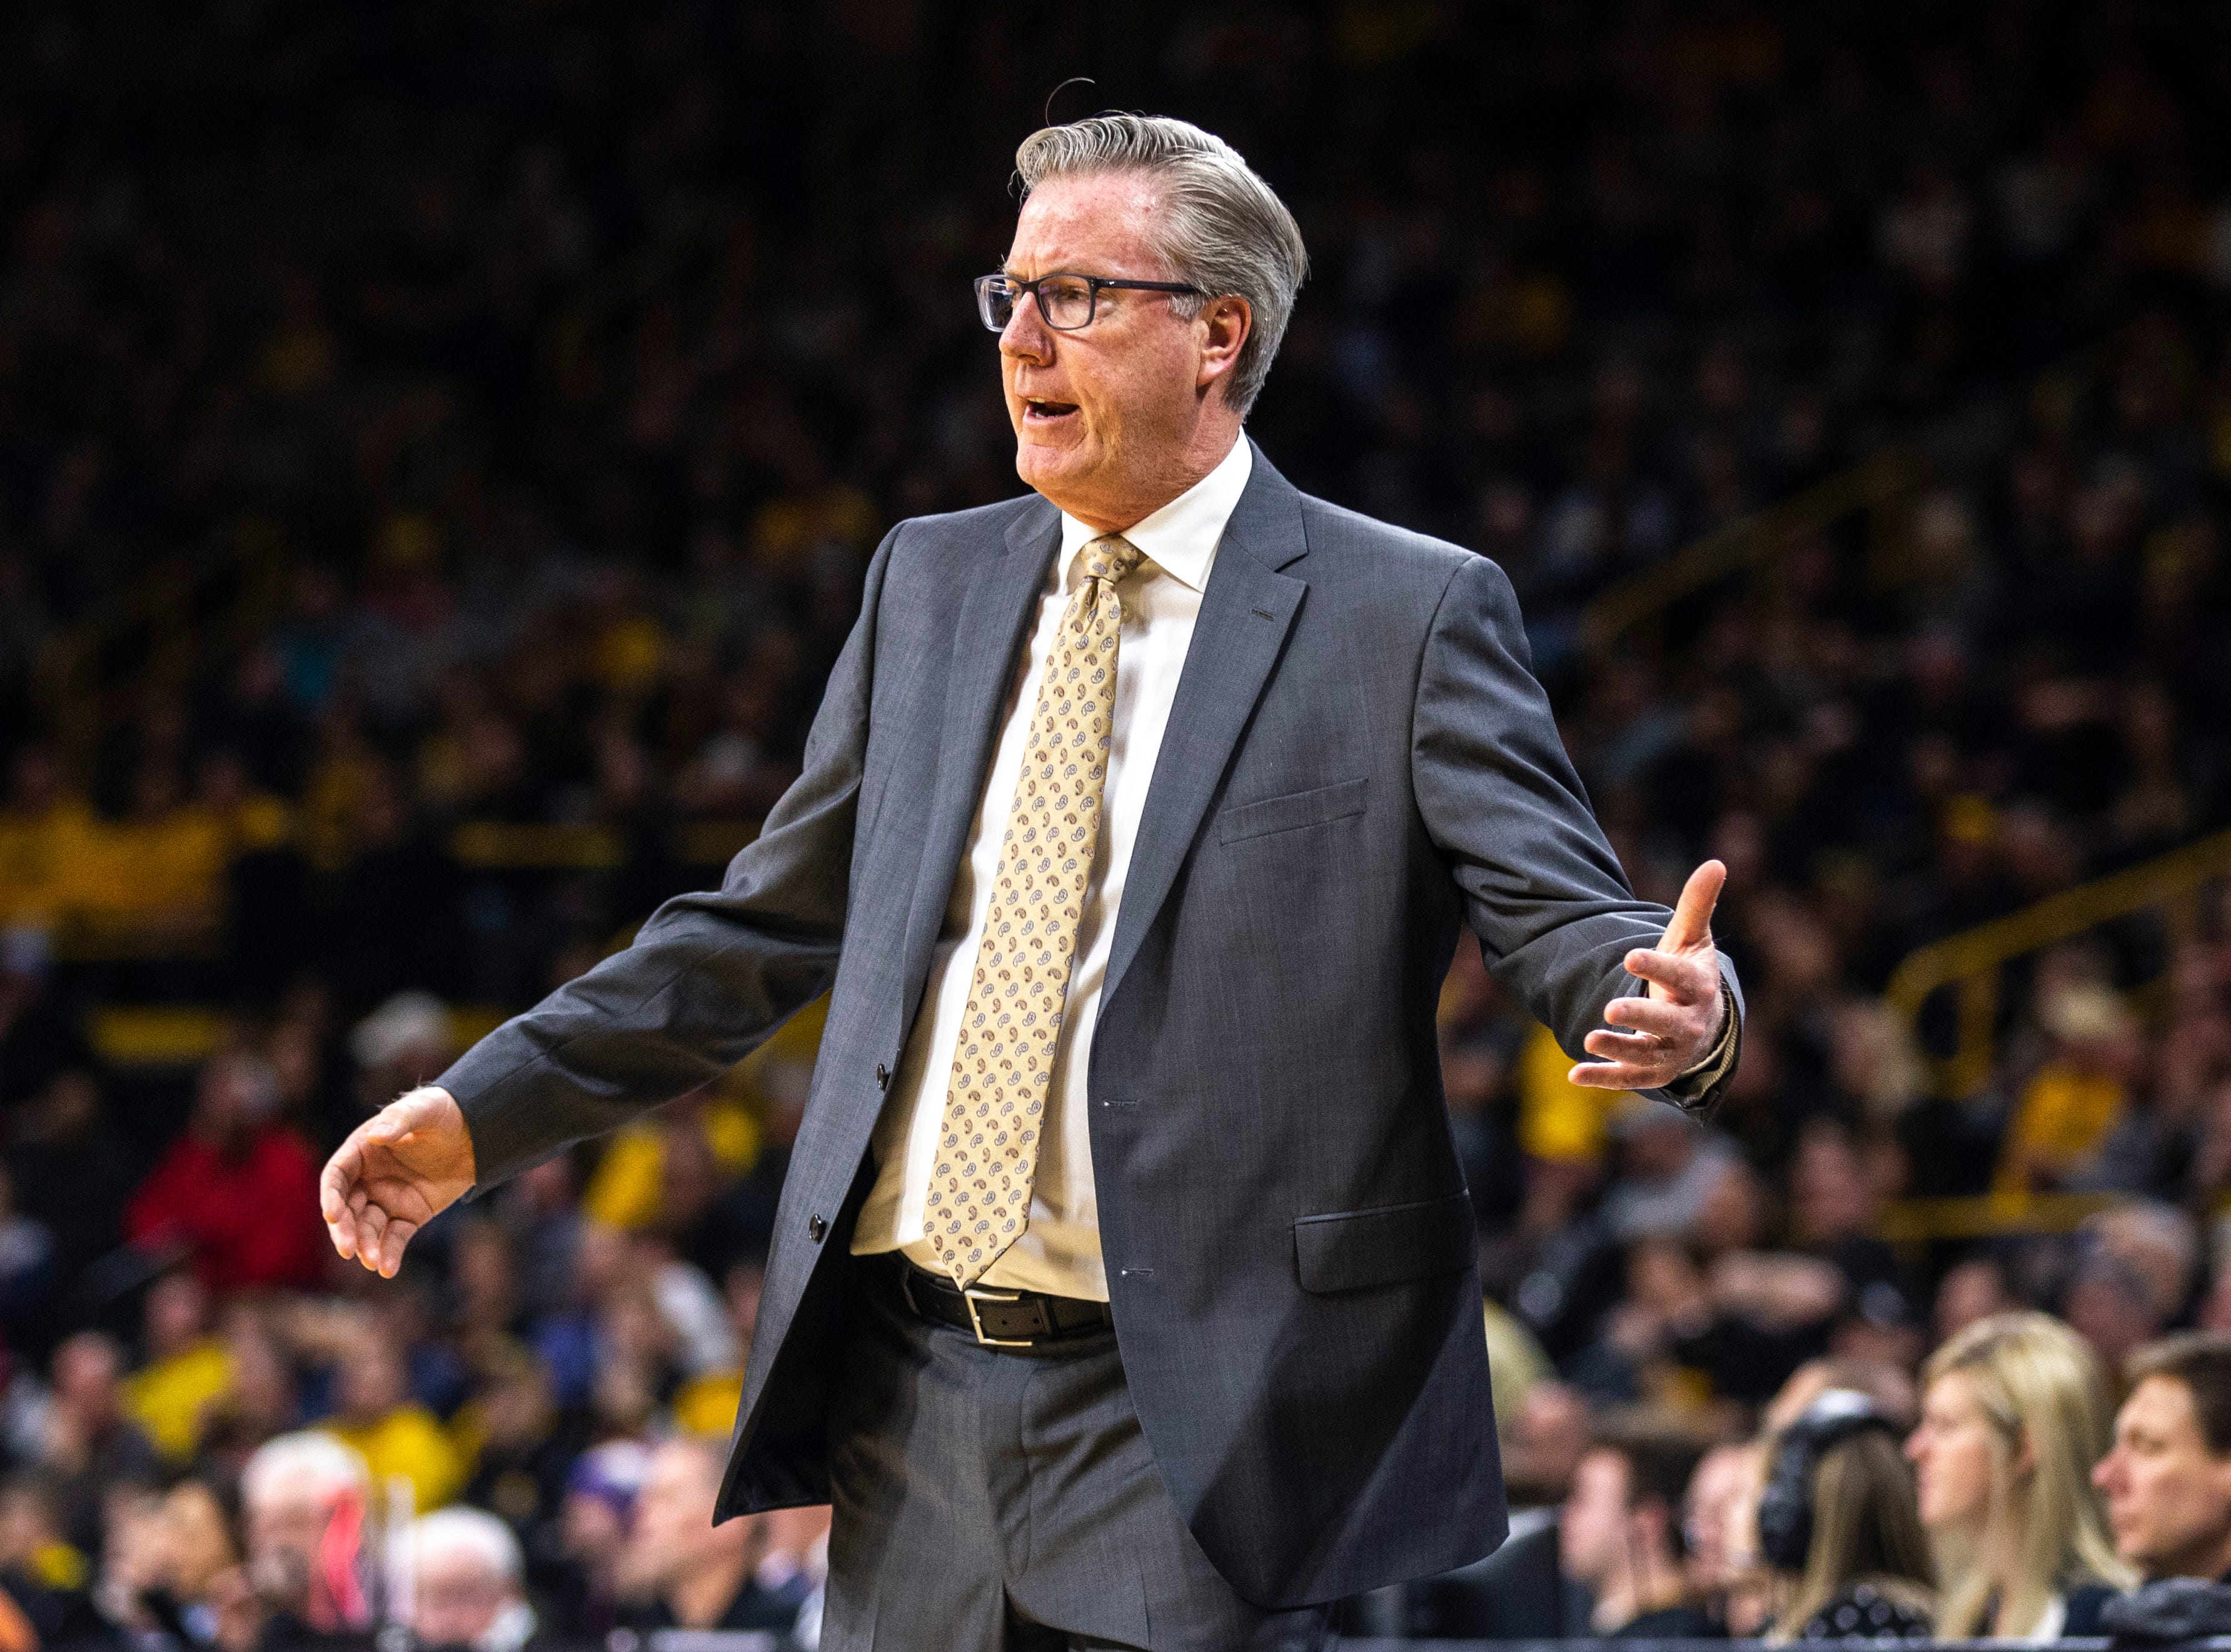 Iowa men's basketball head coach Fran McCaffery reacts during a NCAA Big Ten Conference men's basketball game on Tuesday, Feb. 19, 2019 at Carver-Hawkeye Arena in Iowa City, Iowa.